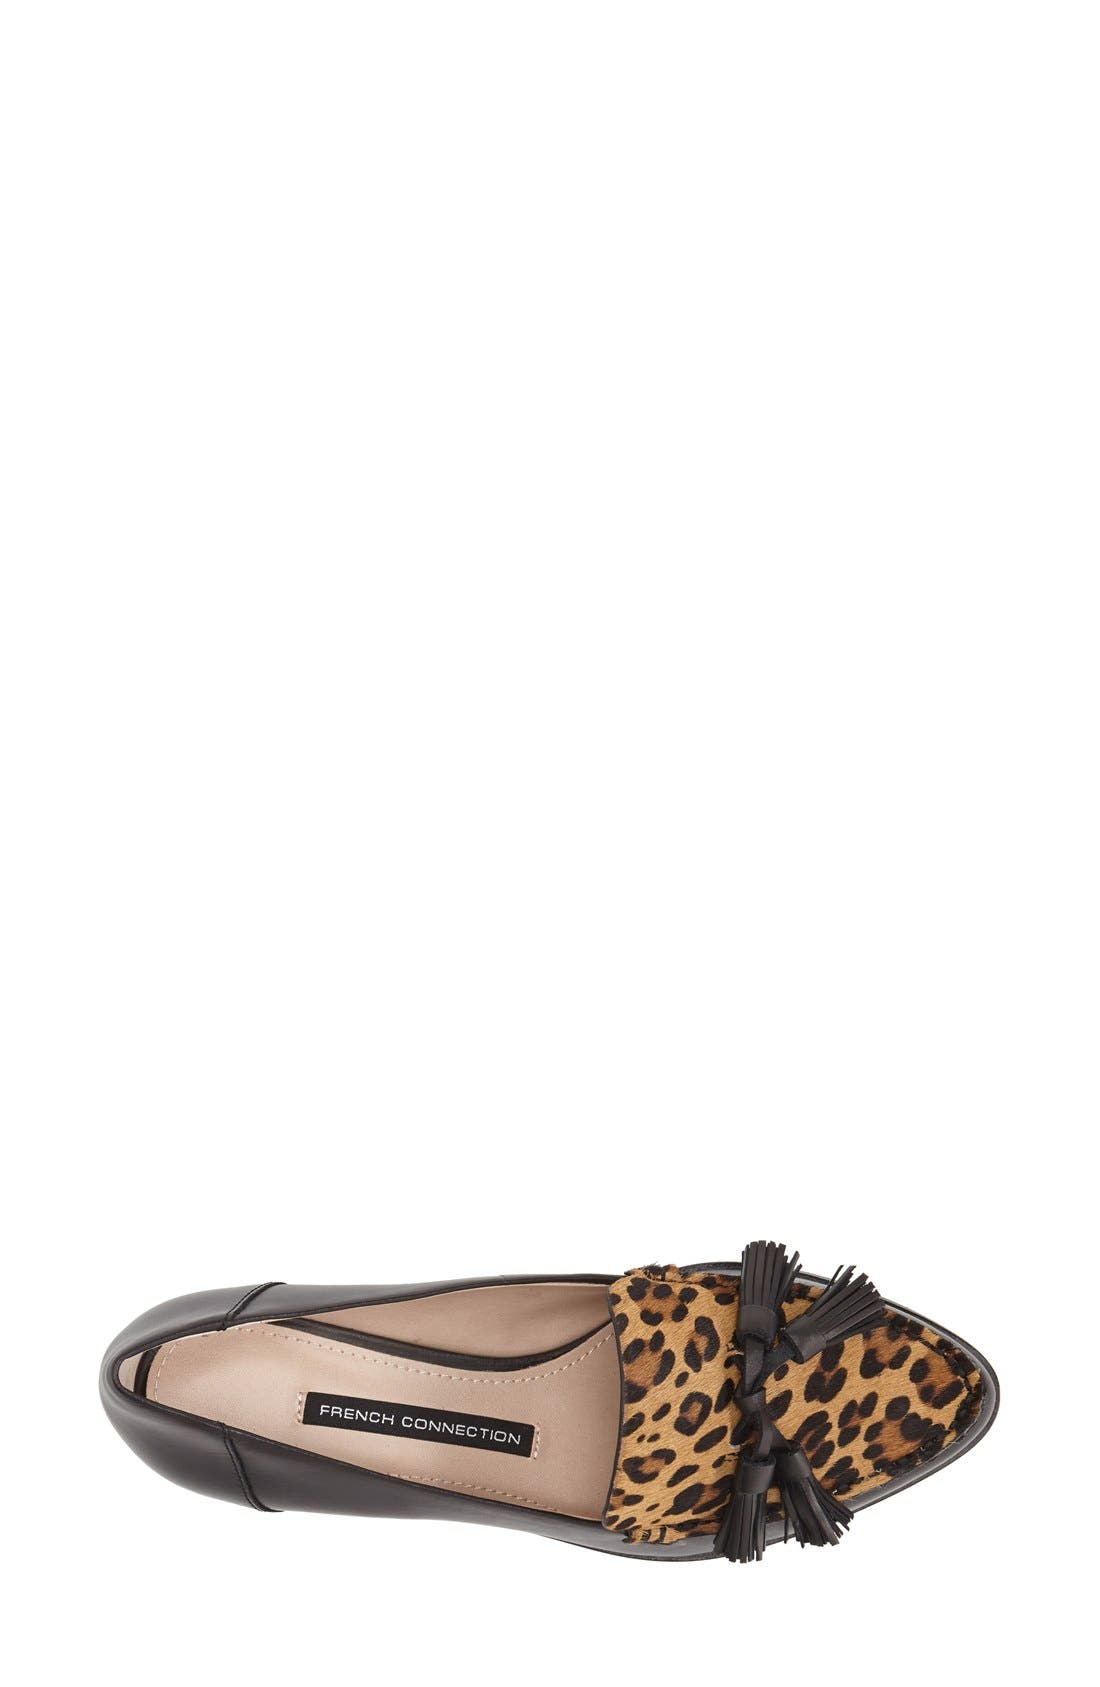 Alternate Image 3  - French Connection 'Lonnie' Tassel Loafer (Women)